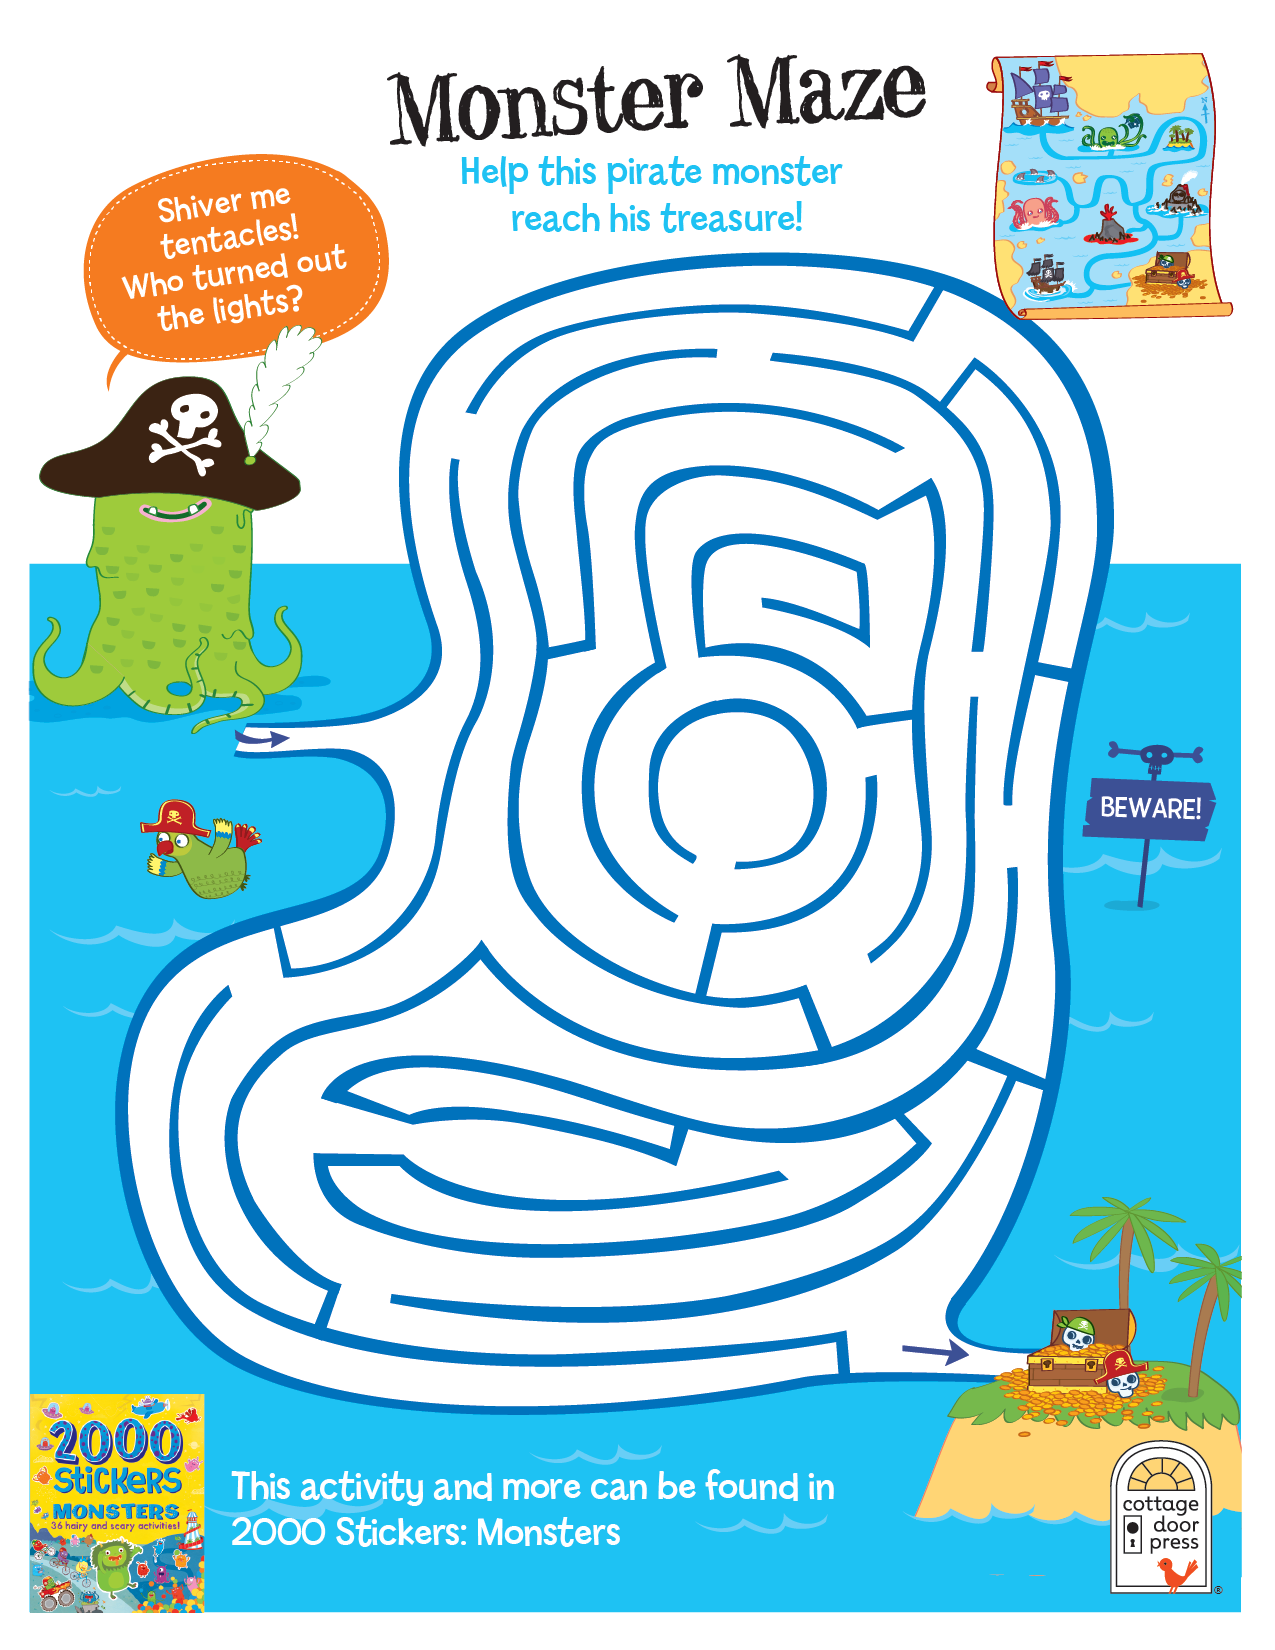 Halloween Activity Monster maze